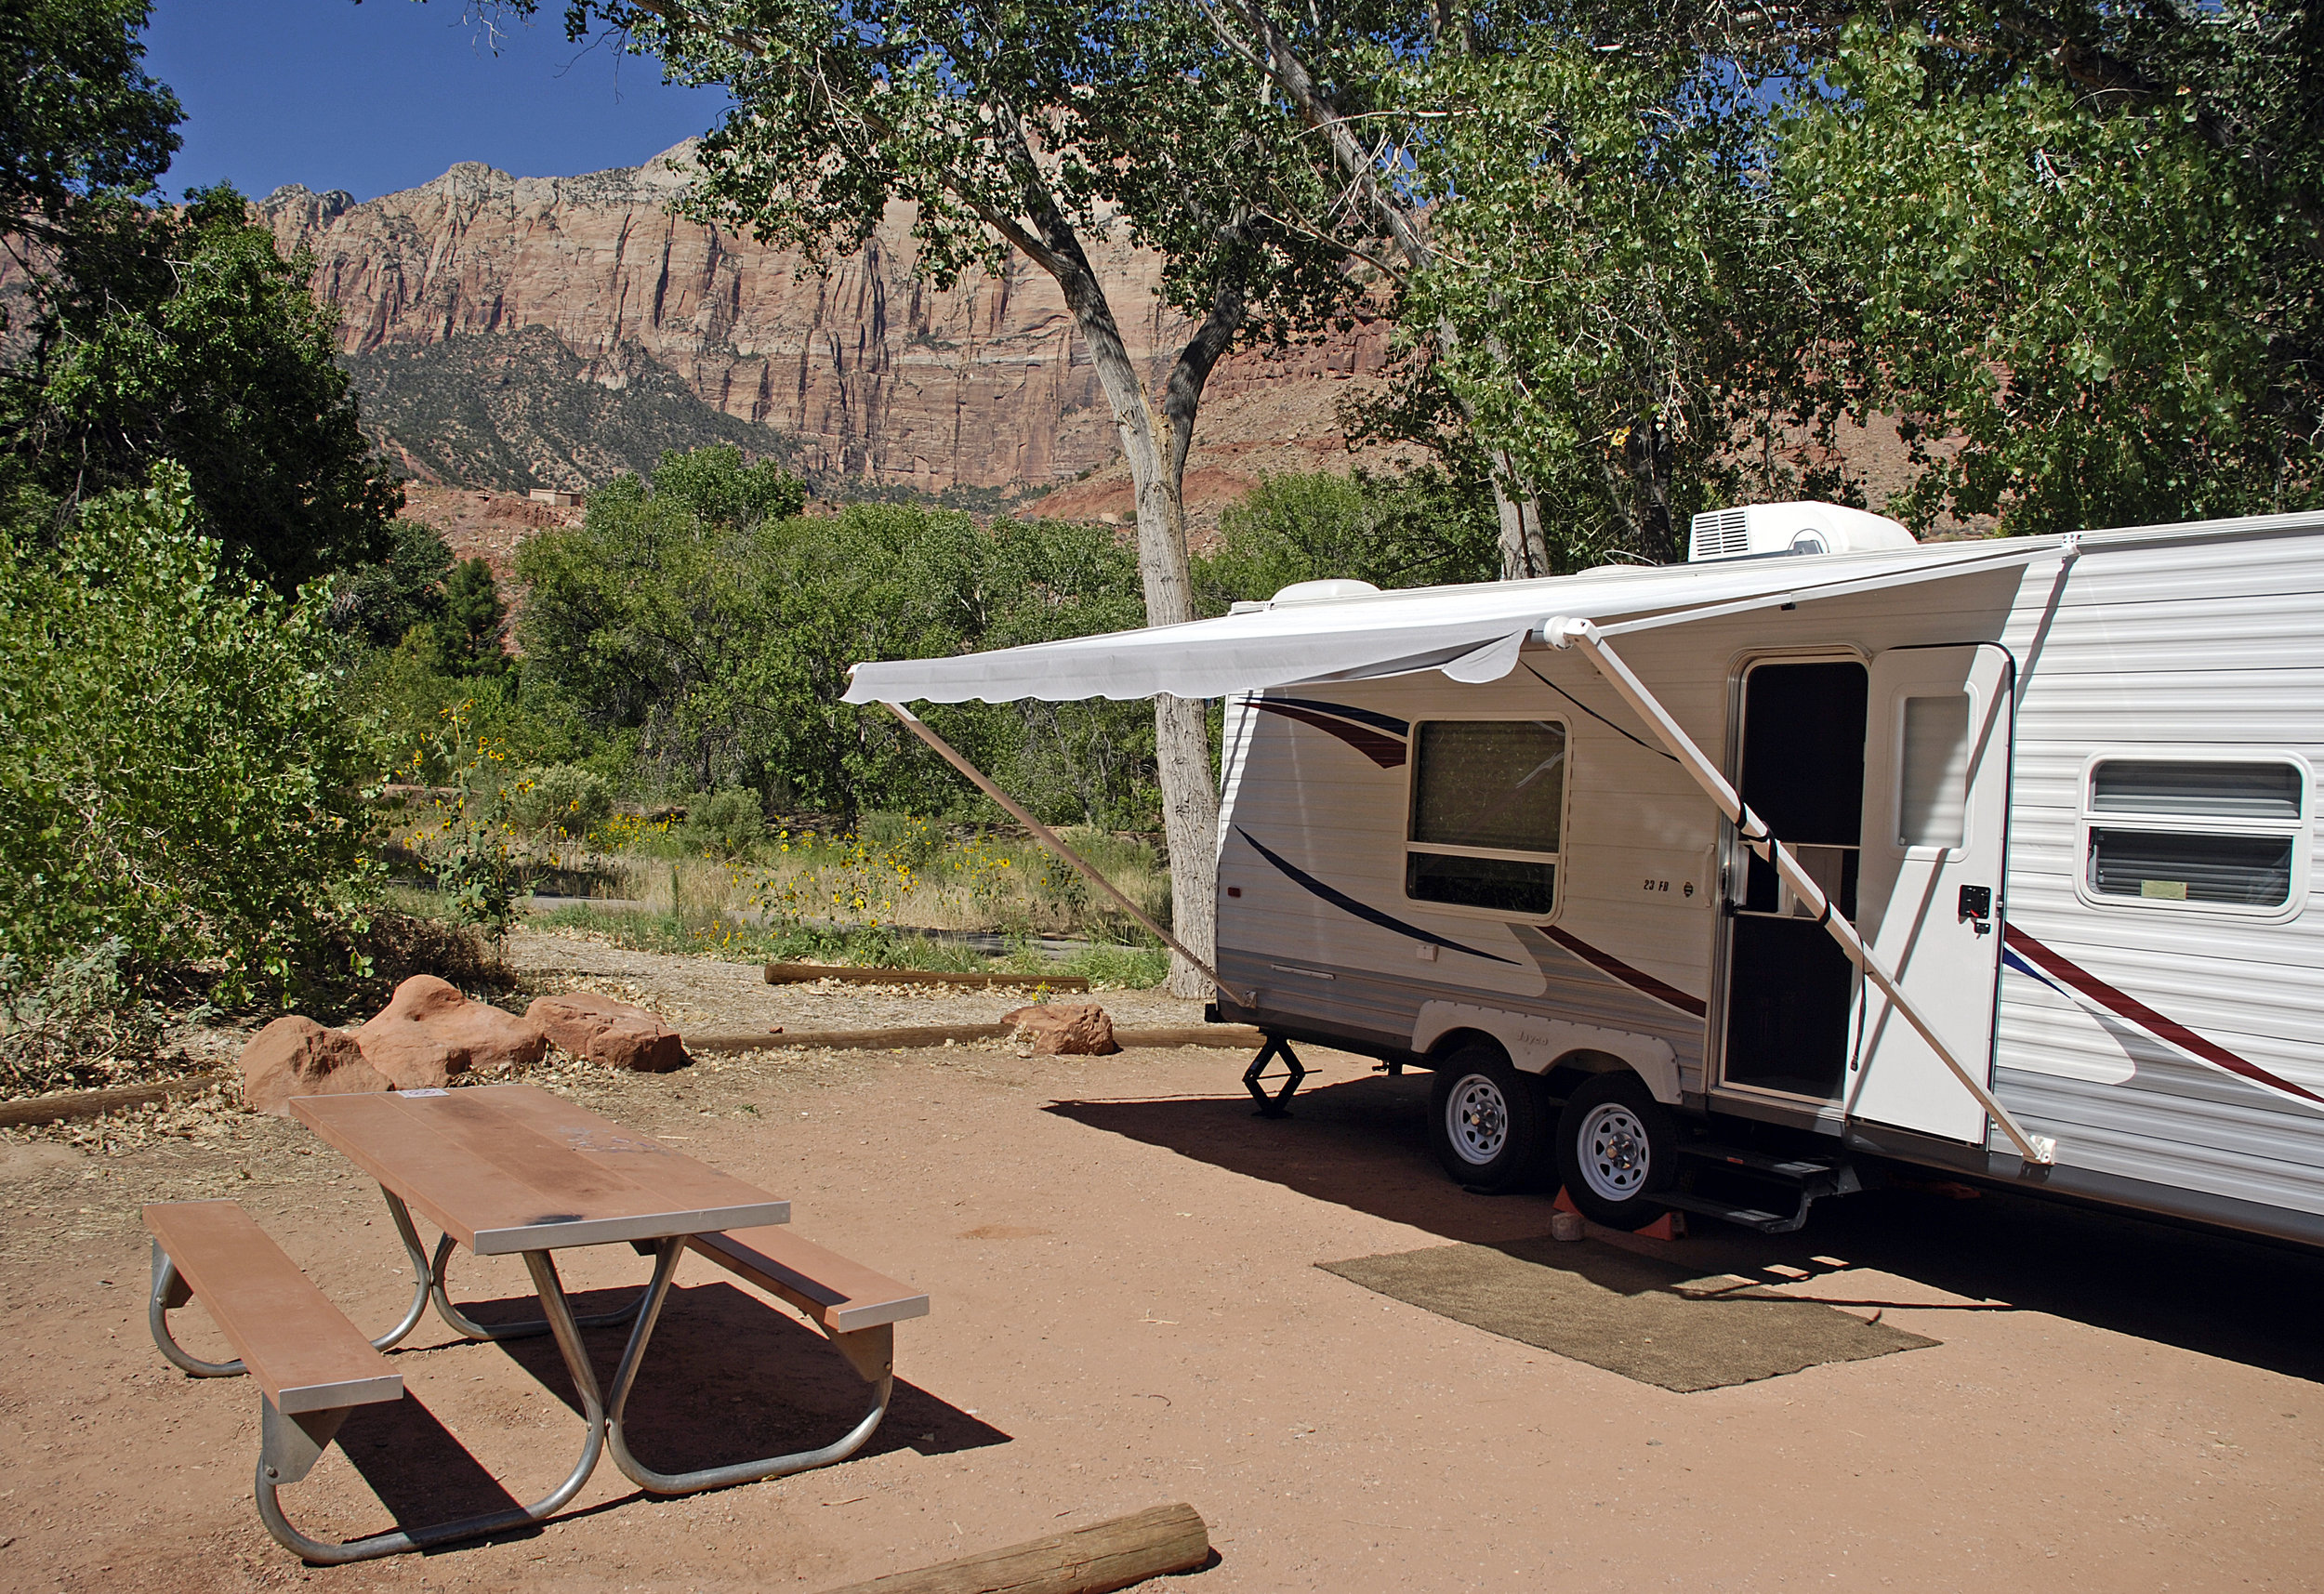 Travel trailer Zion NP